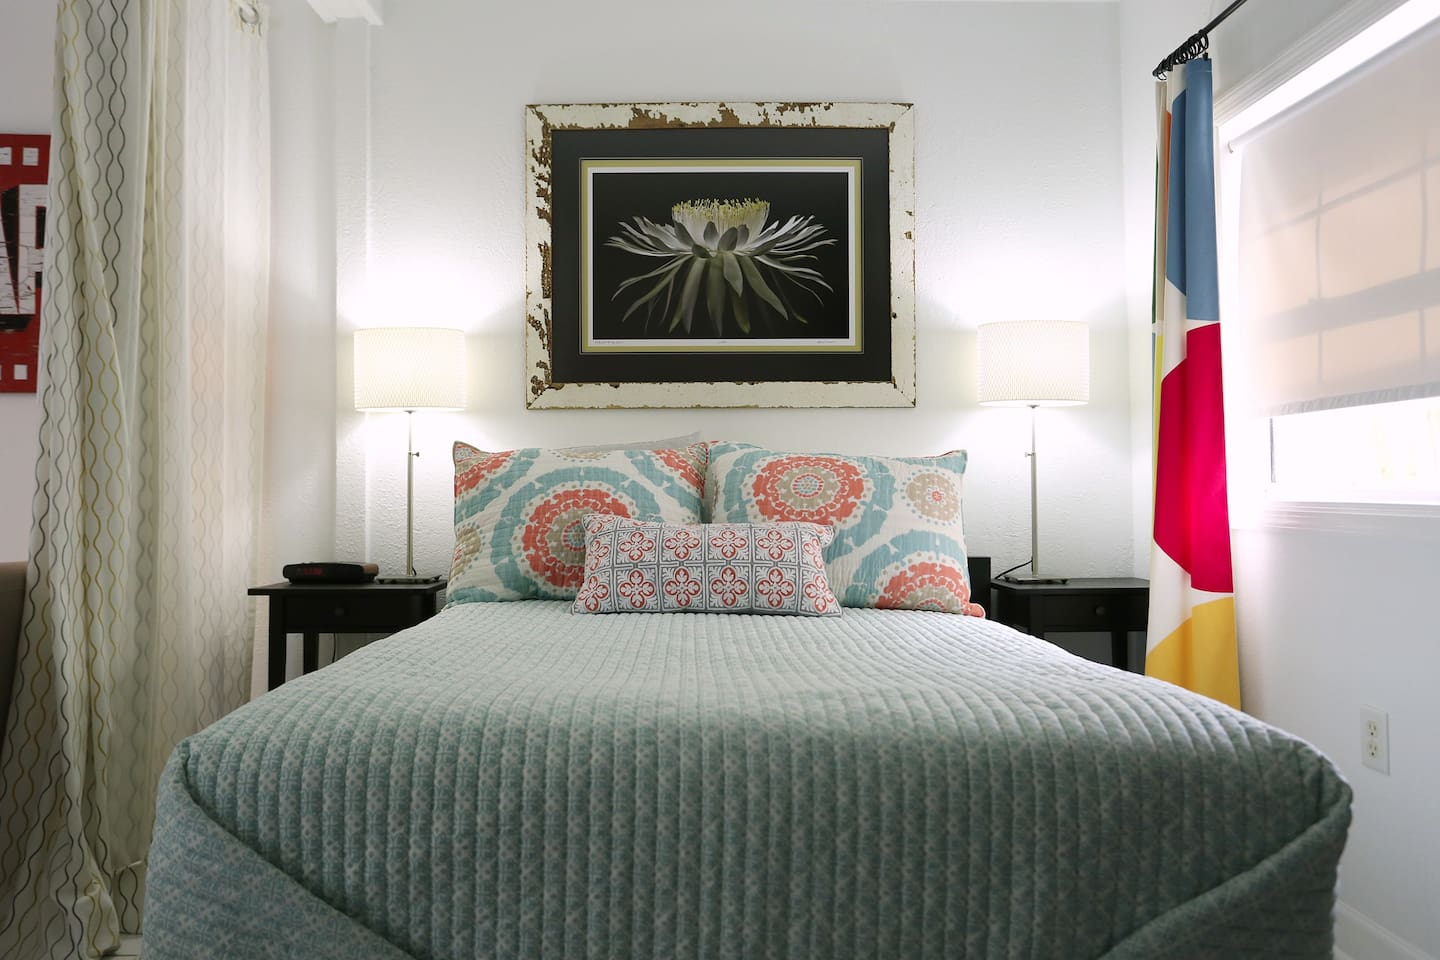 The guesthouse features original artwork by a local photographer and full size bed.